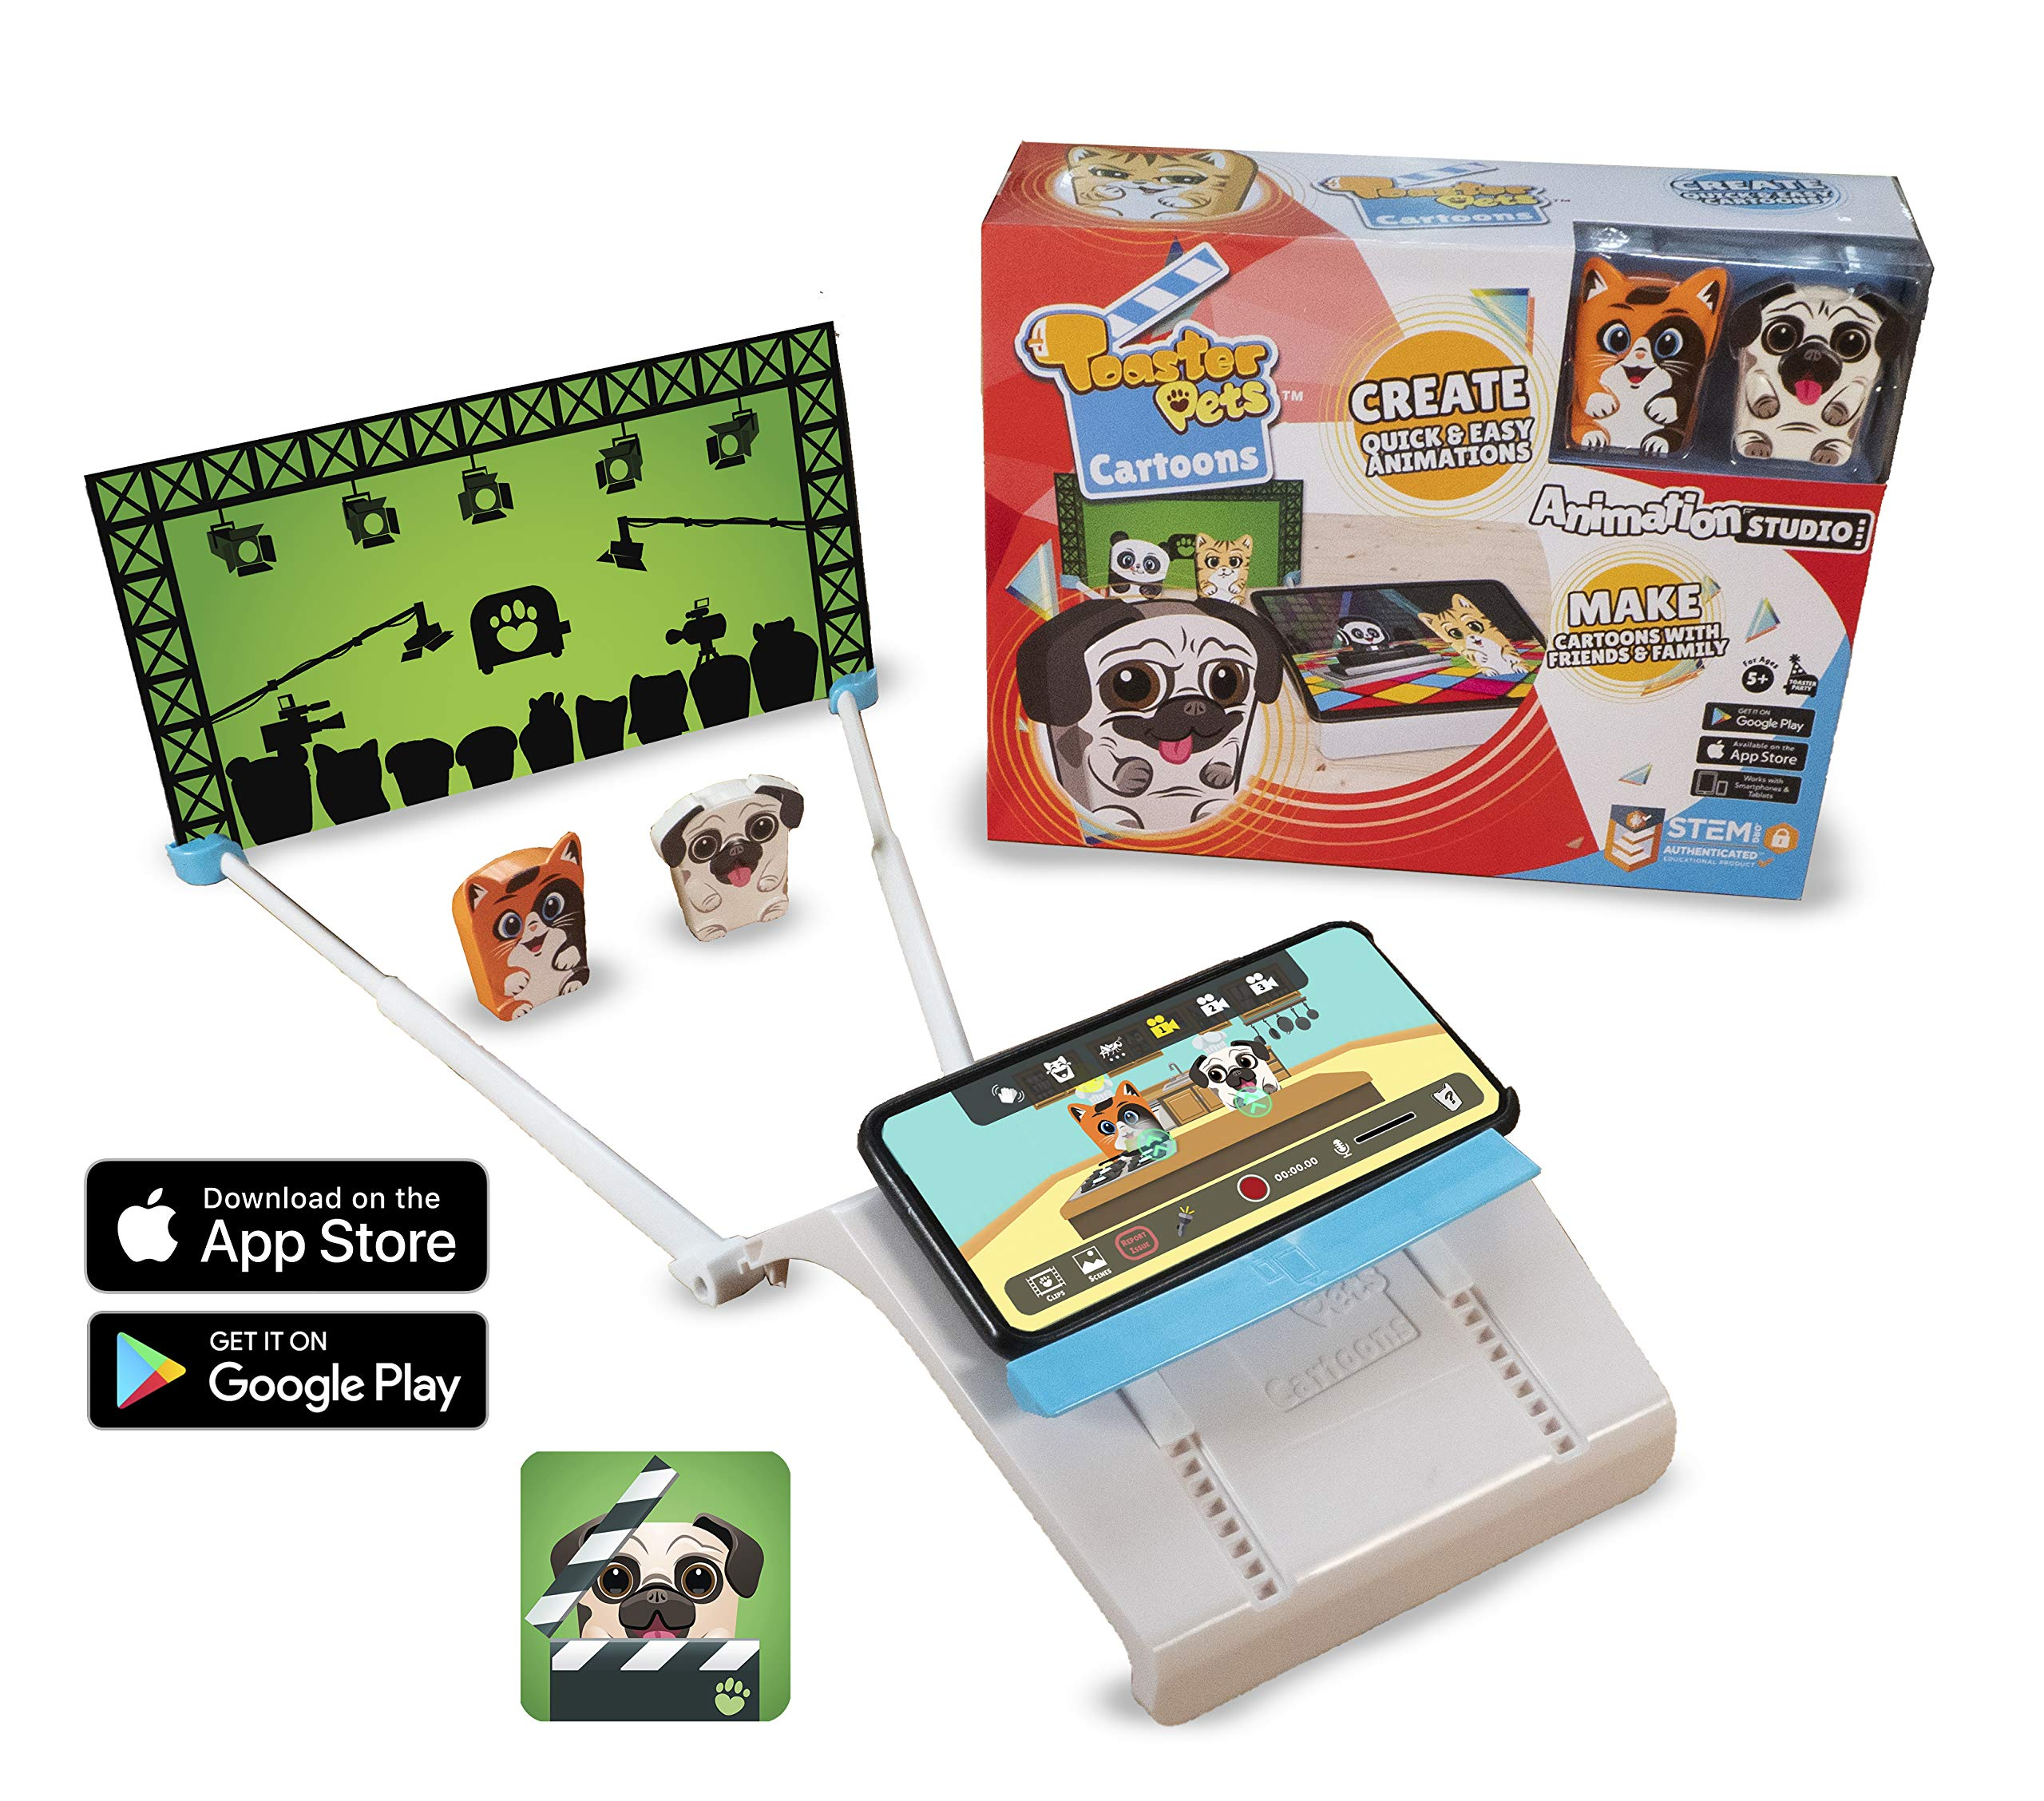 Toaster Pets Cartoons Animation Studio kit | Quick, Easy and Collaborative Movie Maker Set for Girls and Boys